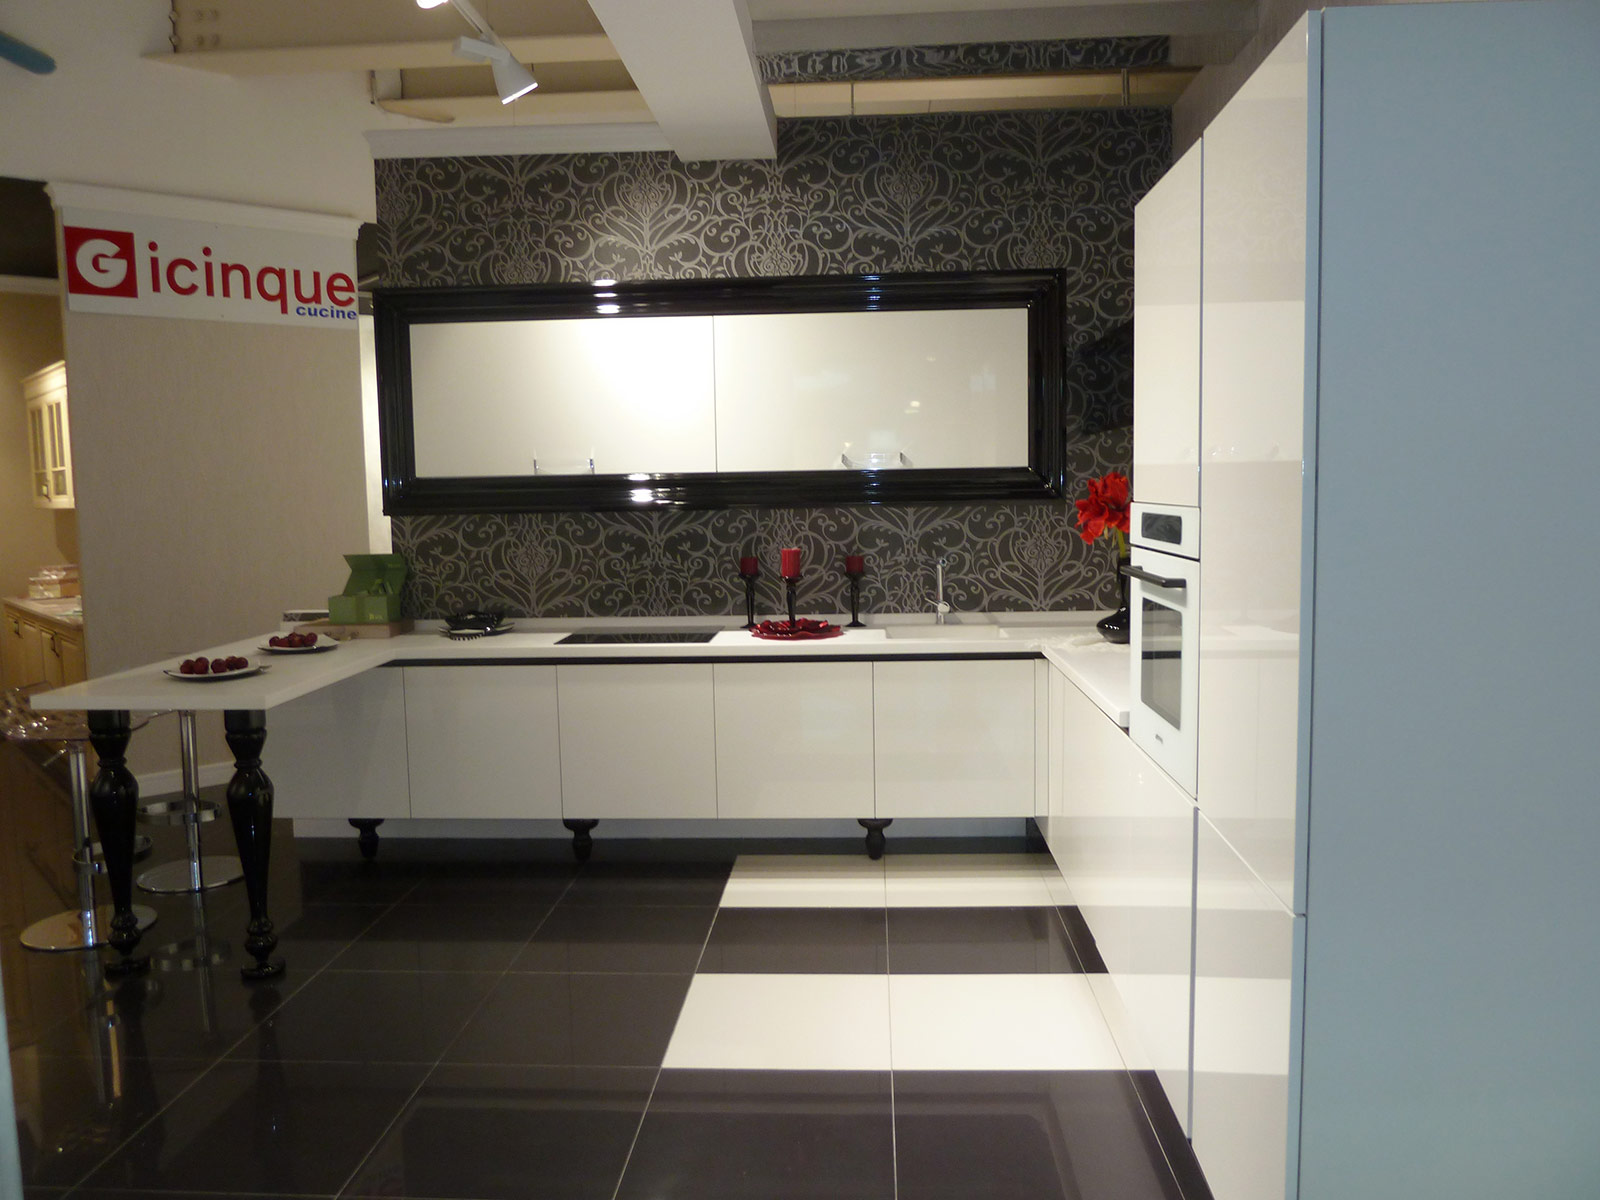 New Gicinque kitchen showroom in Moscow